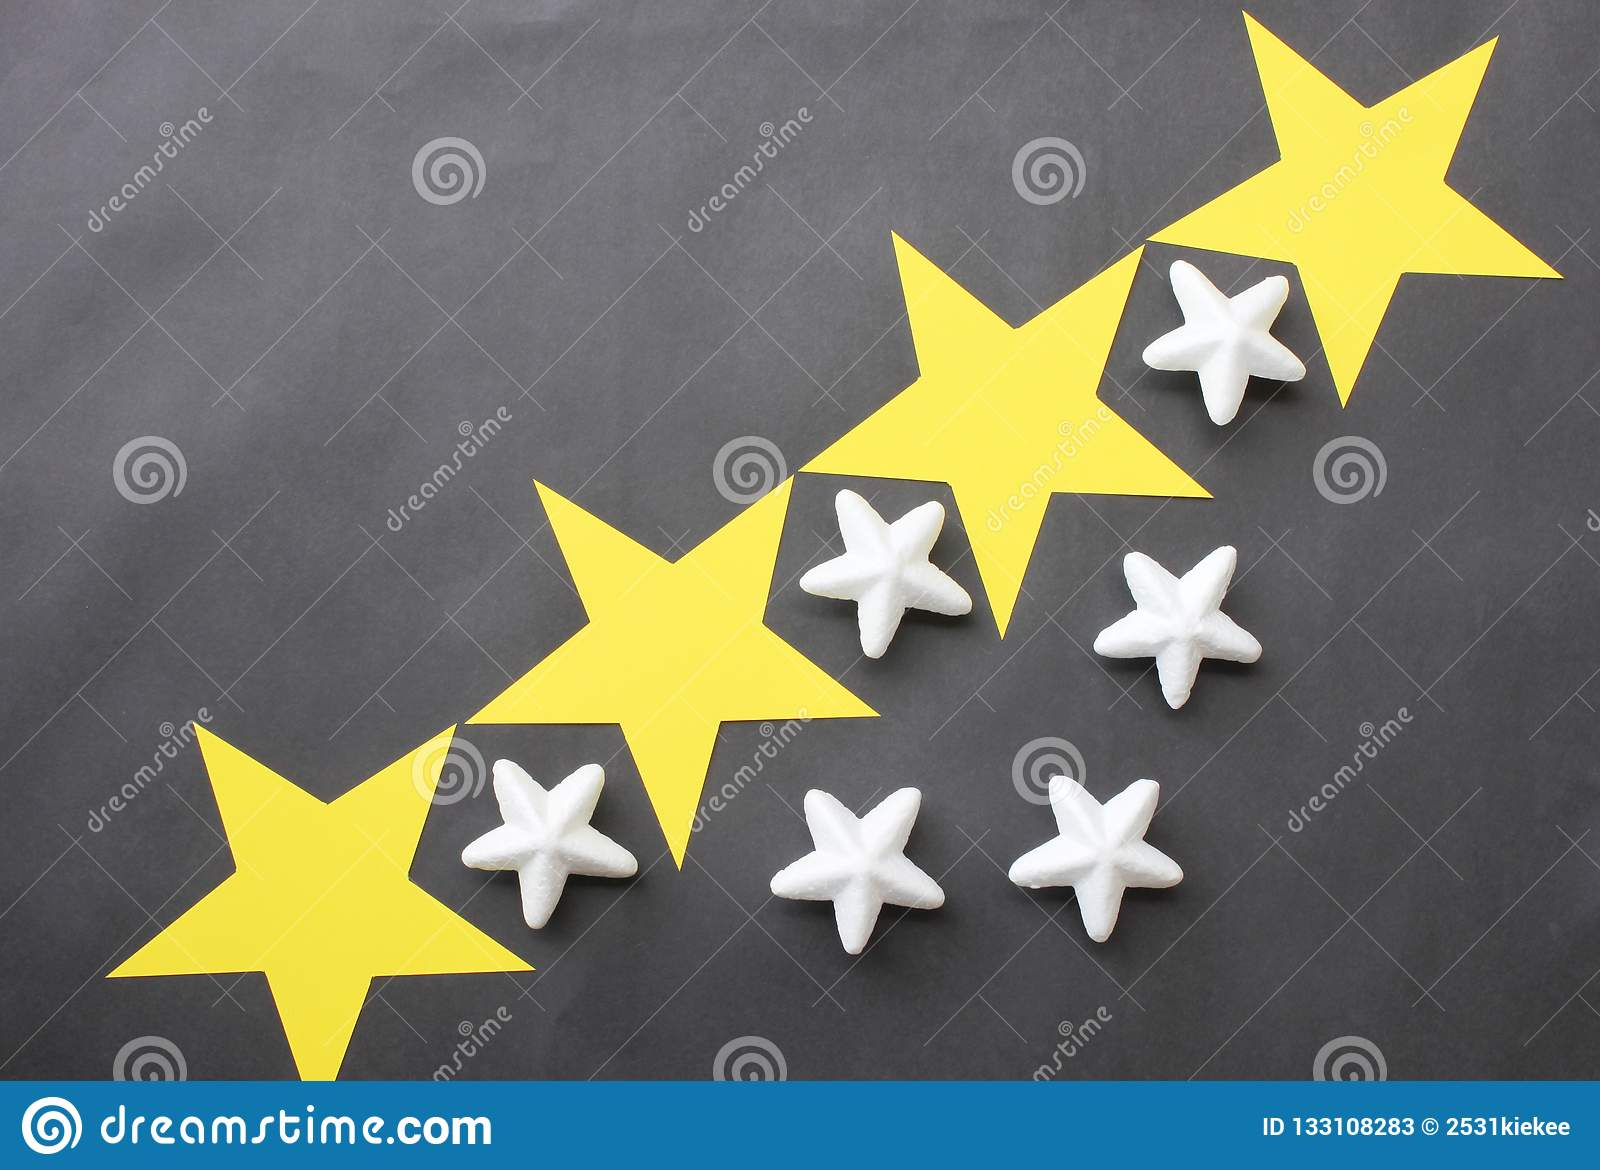 Yellow And White Stars Are Placed On A Black Background For Business